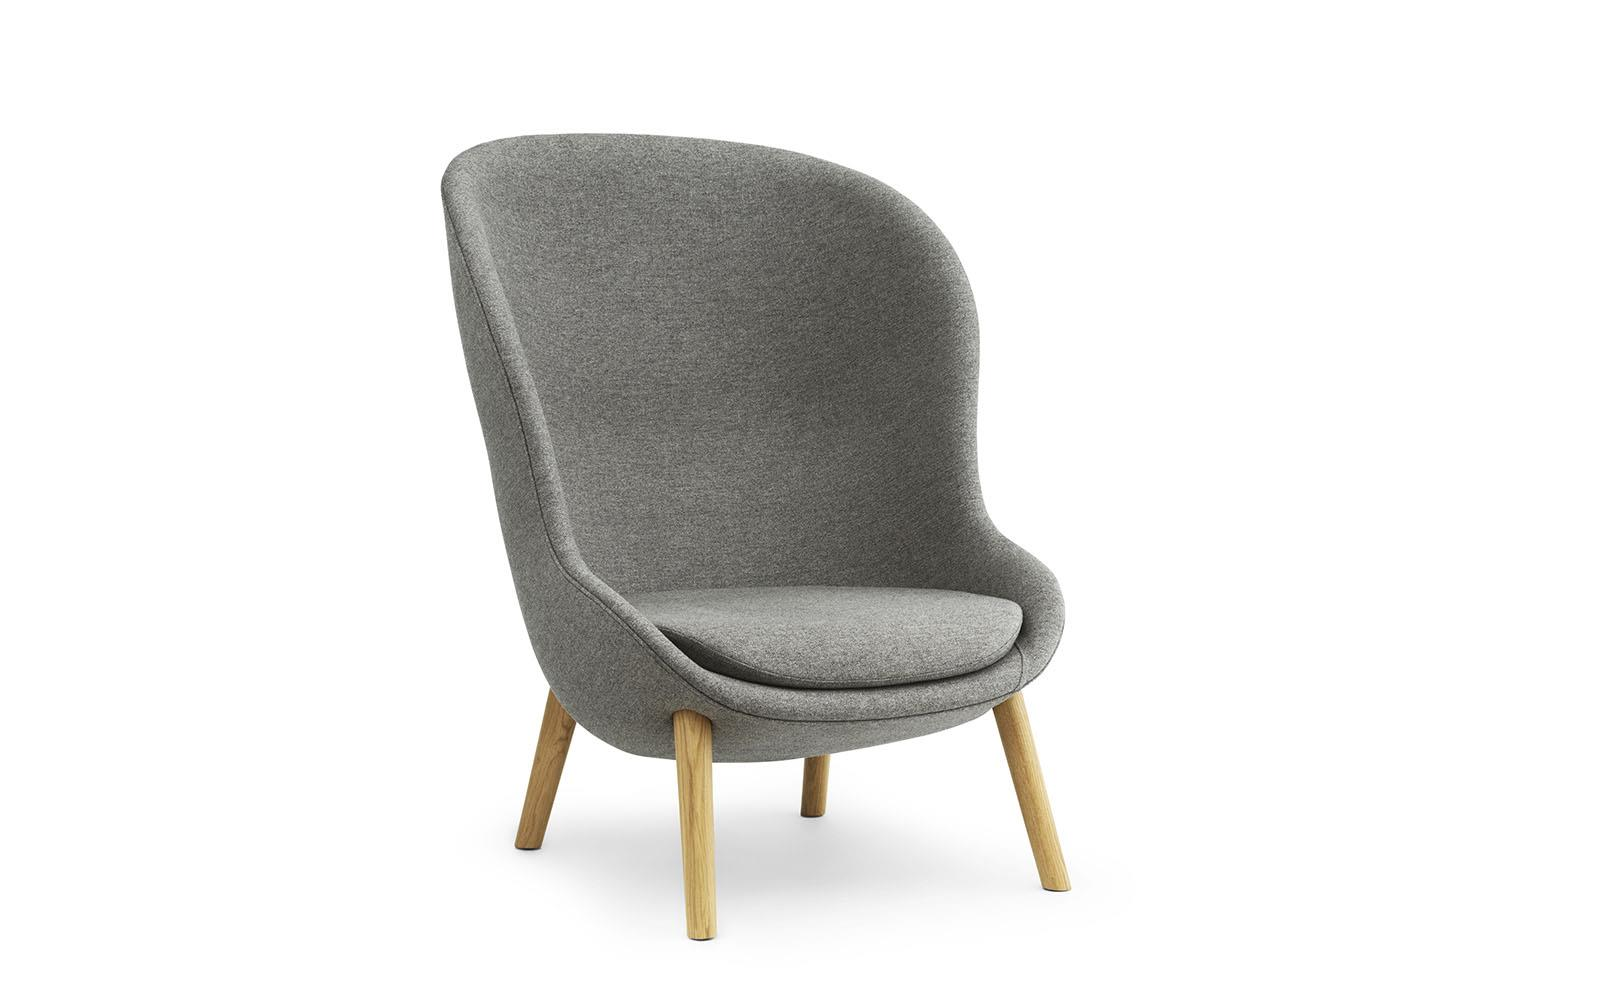 Loungsessel Hyg Lounge Sessel Hoch Eiche Main Line Flax